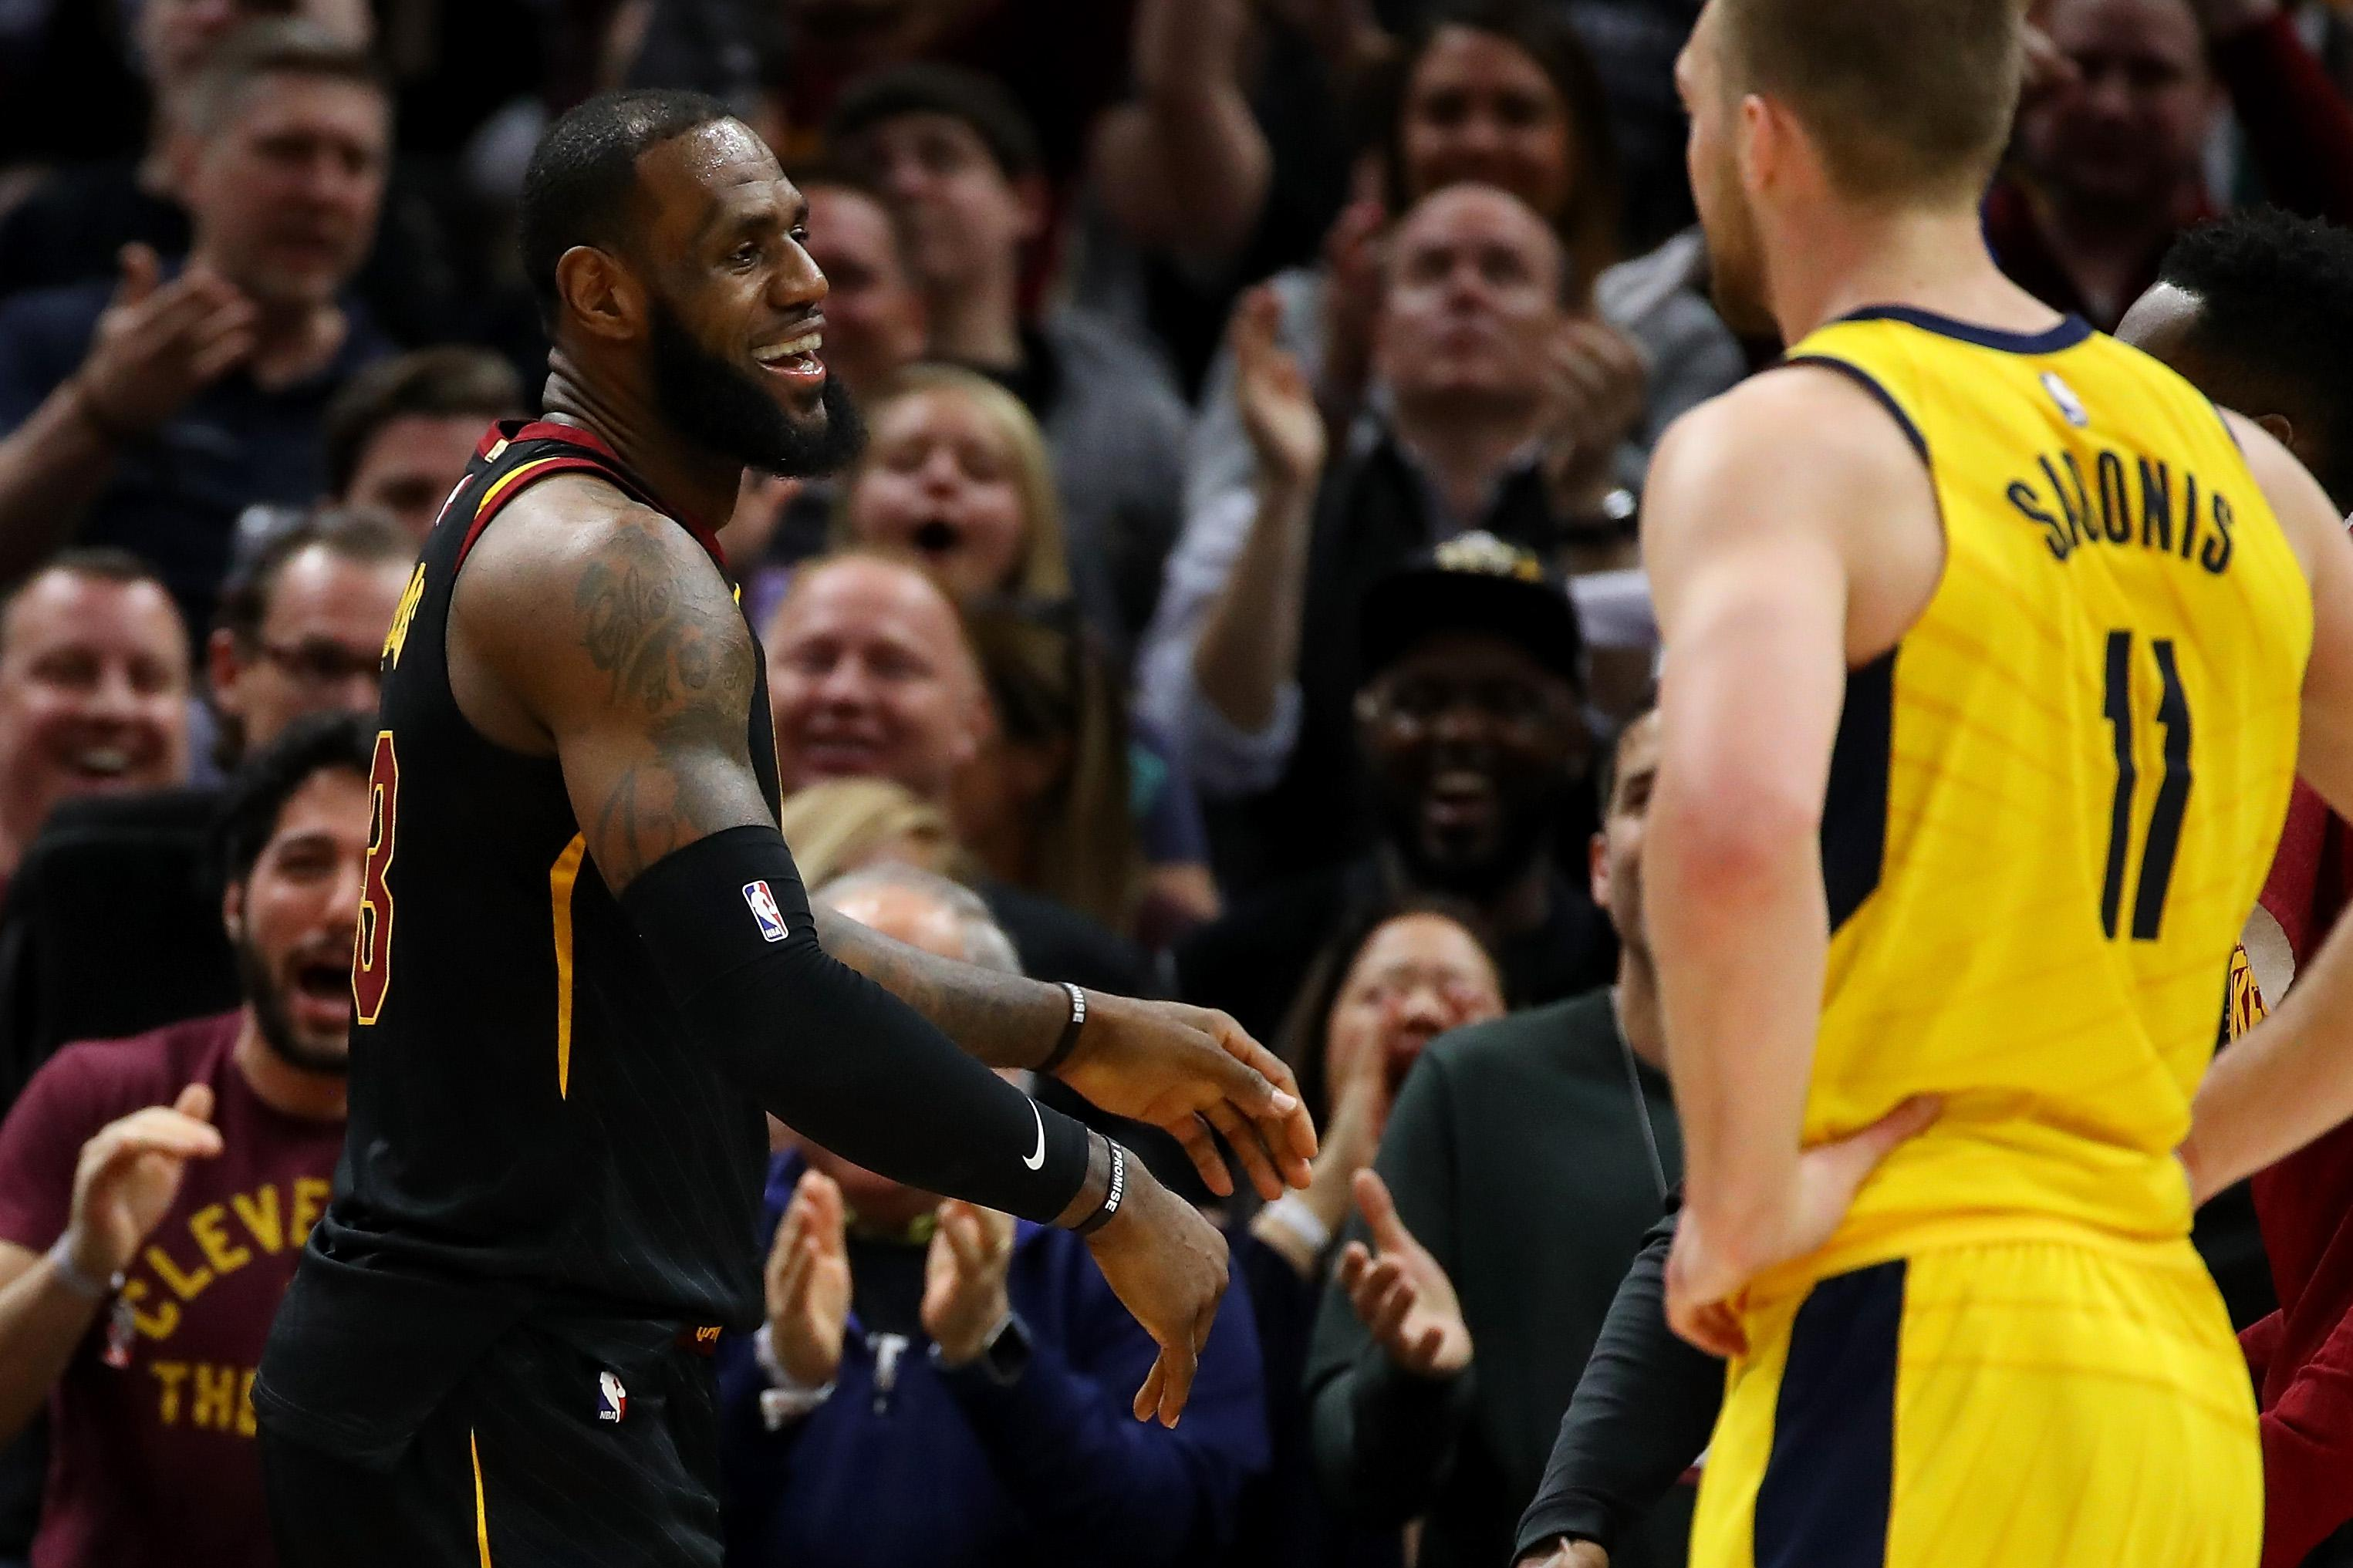 CLEVELAND, OH - APRIL 29: LeBron James #23 of the Cleveland Cavaliers react after a first half basket next to Domantas Sabonis #11 of the Indiana Pacers in Game Seven of the Eastern Conference Quarterfinals during the 2018 NBA Playoffs at Quicken Loans Arena on April 29, 2018 in Cleveland, Ohio. NOTE TO USER: User expressly acknowledges and agrees that, by downloading and or using this photograph, User is consenting to the terms and conditions of the Getty Images License Agreement. (Photo by Gregory Shamus/Getty Images)